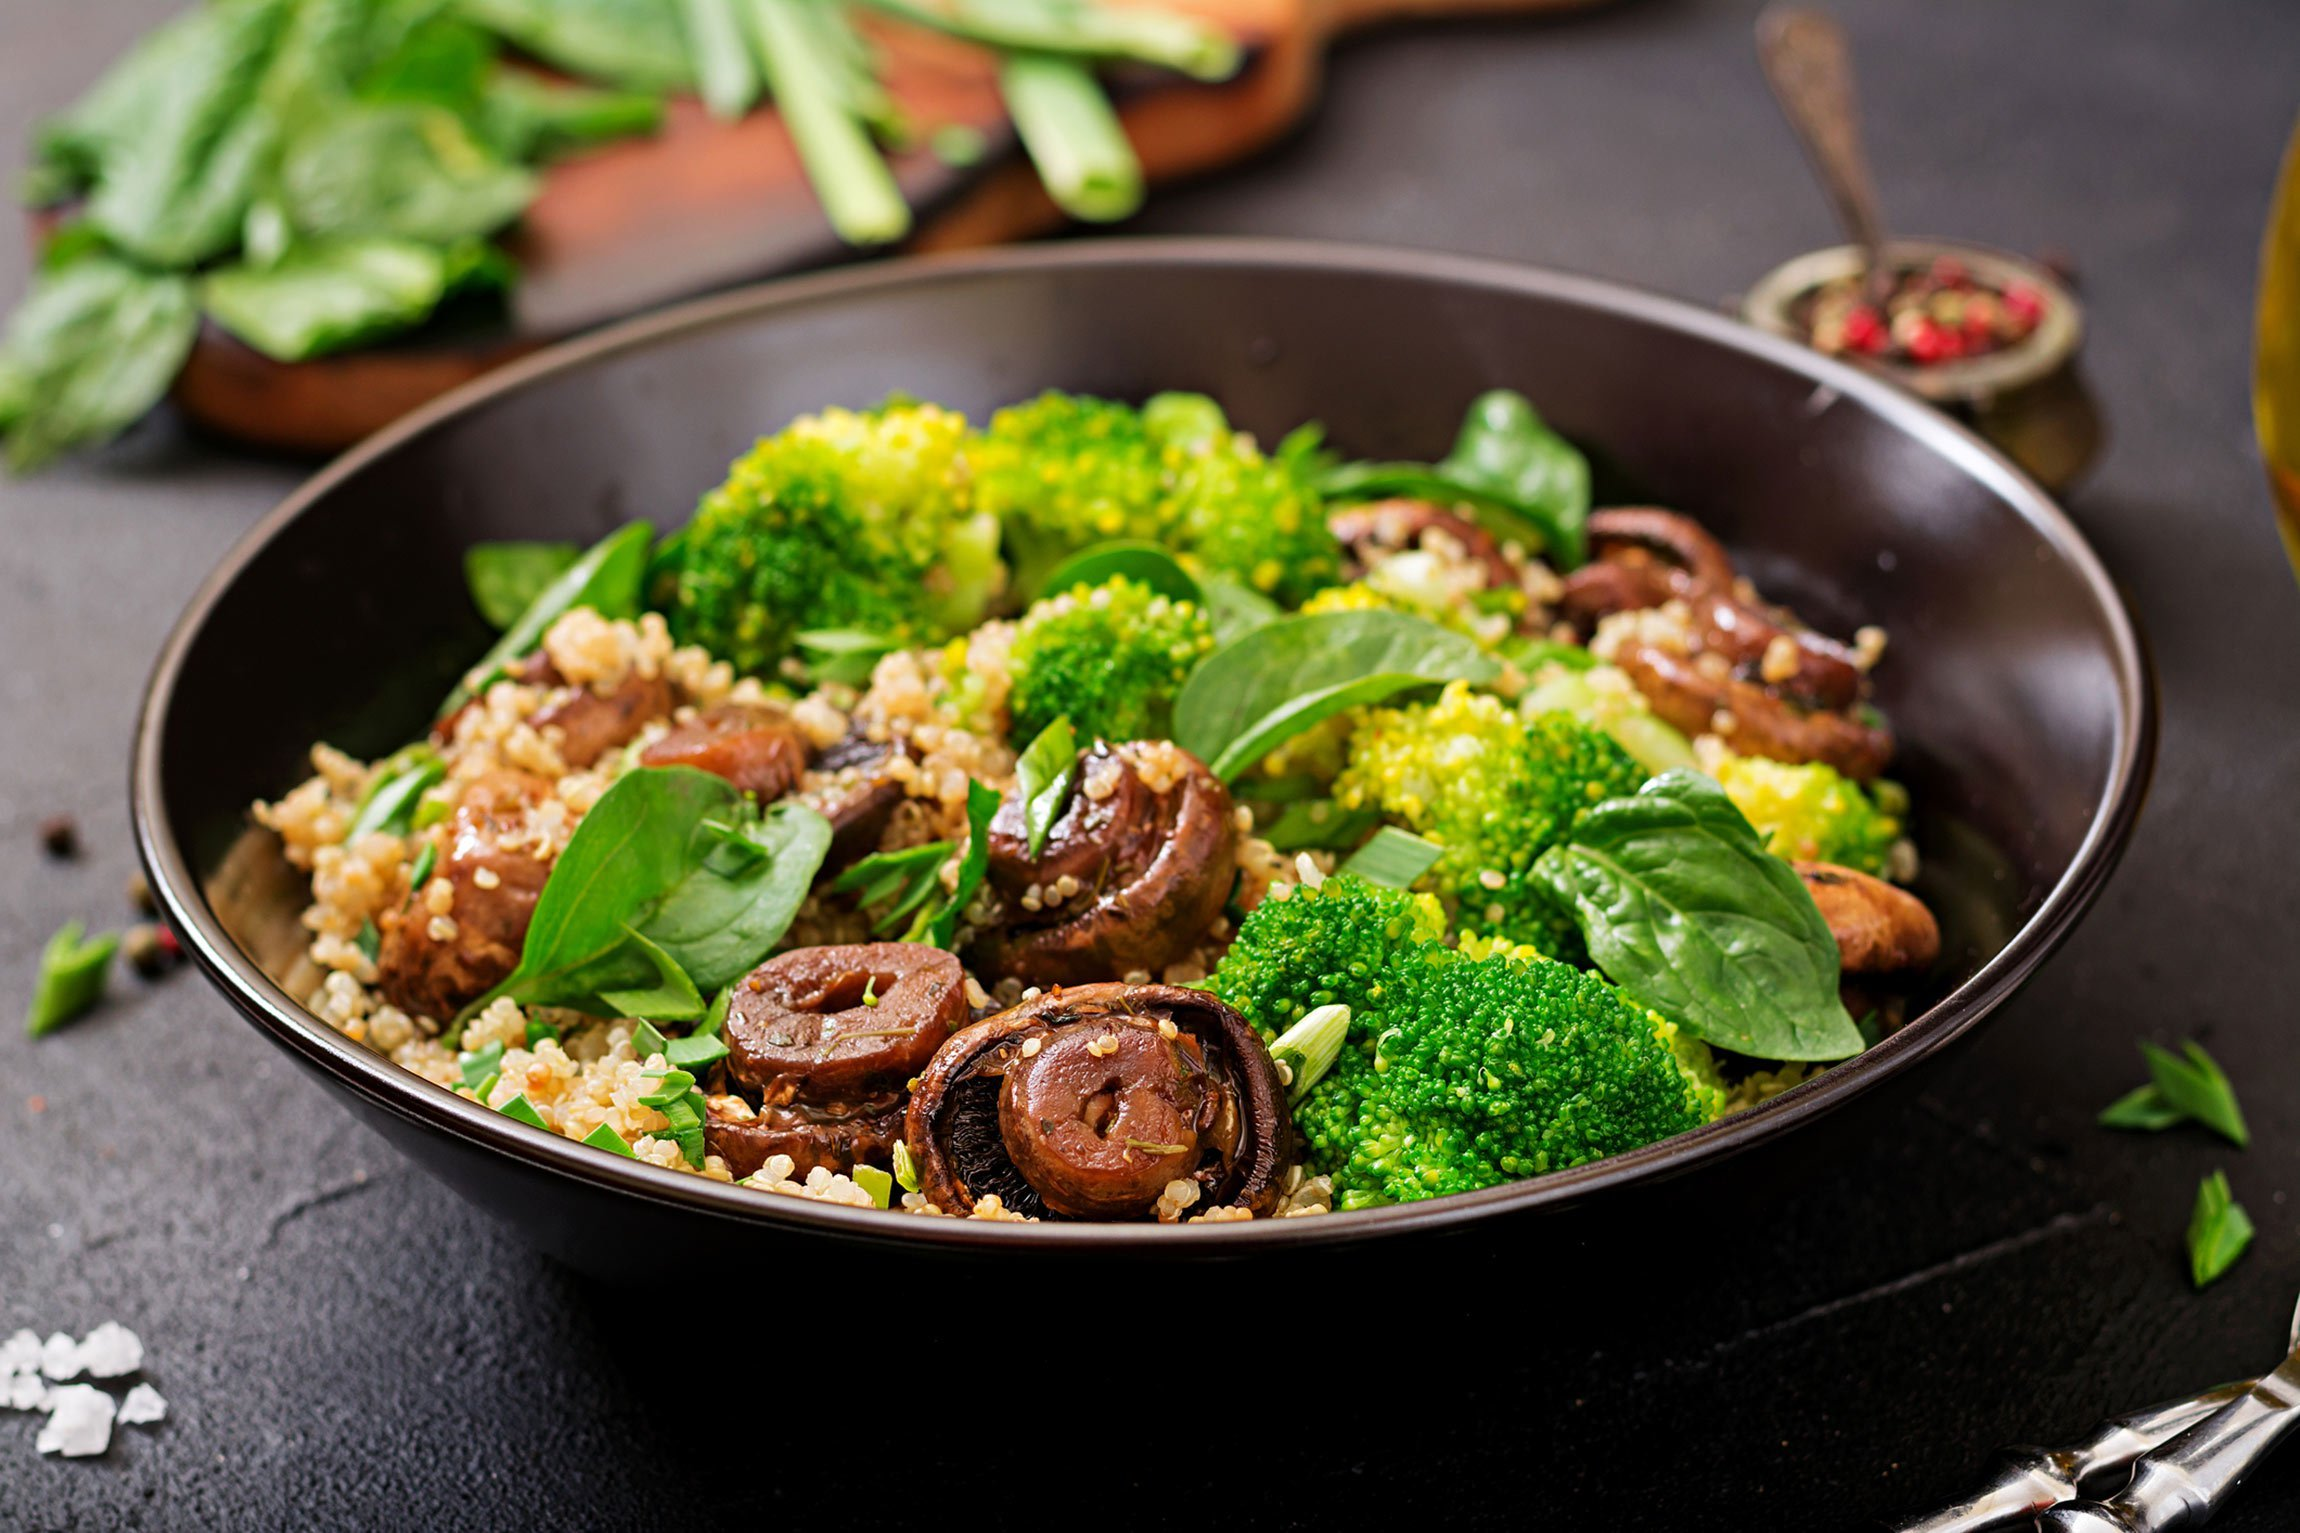 broccoli and mushrooms stir fry